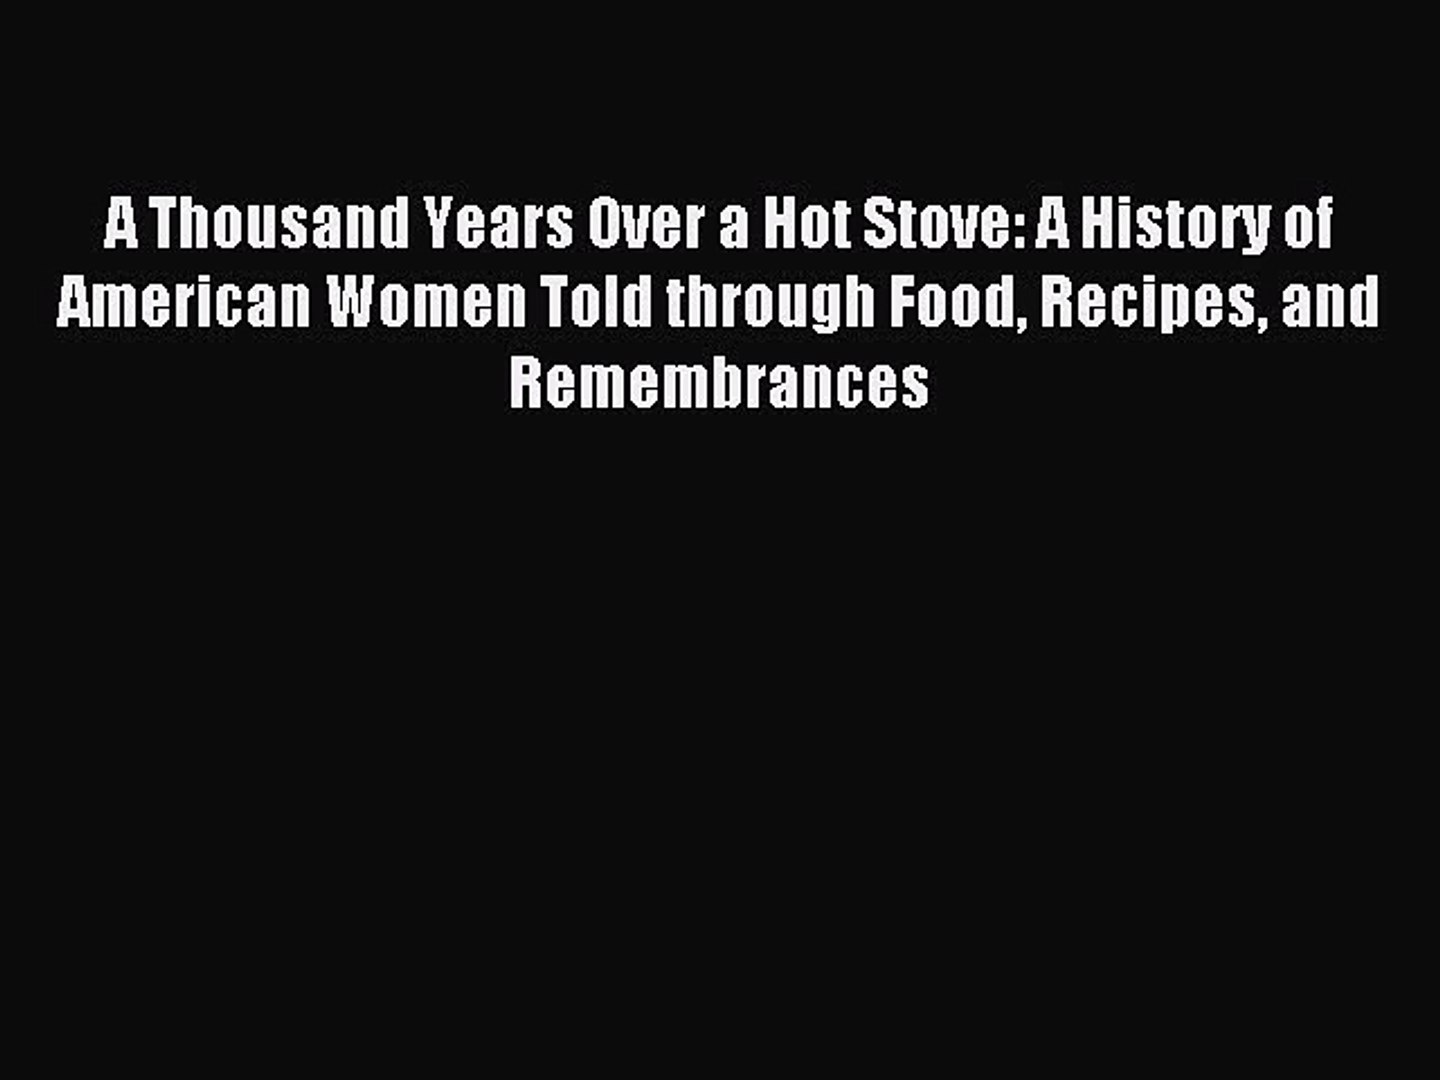 Read A Thousand Years Over a Hot Stove: A History of American Women Told through Food Recipes